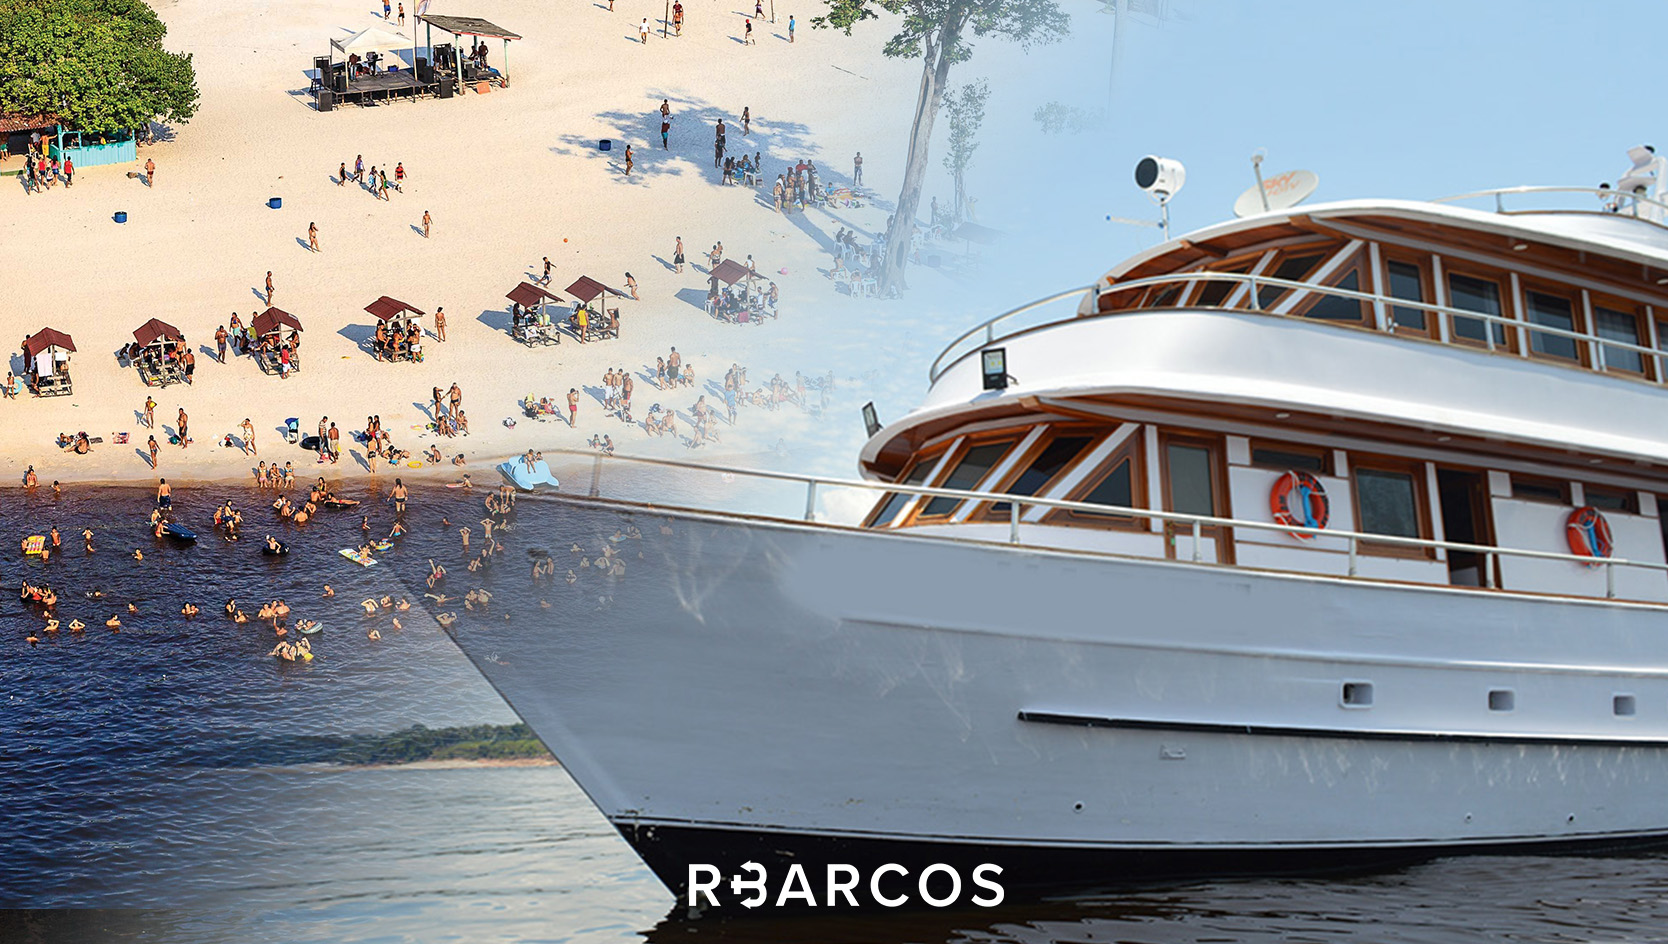 From the city of Manaus you can board a Yacht for daily nautical tours, or for a long period of time.